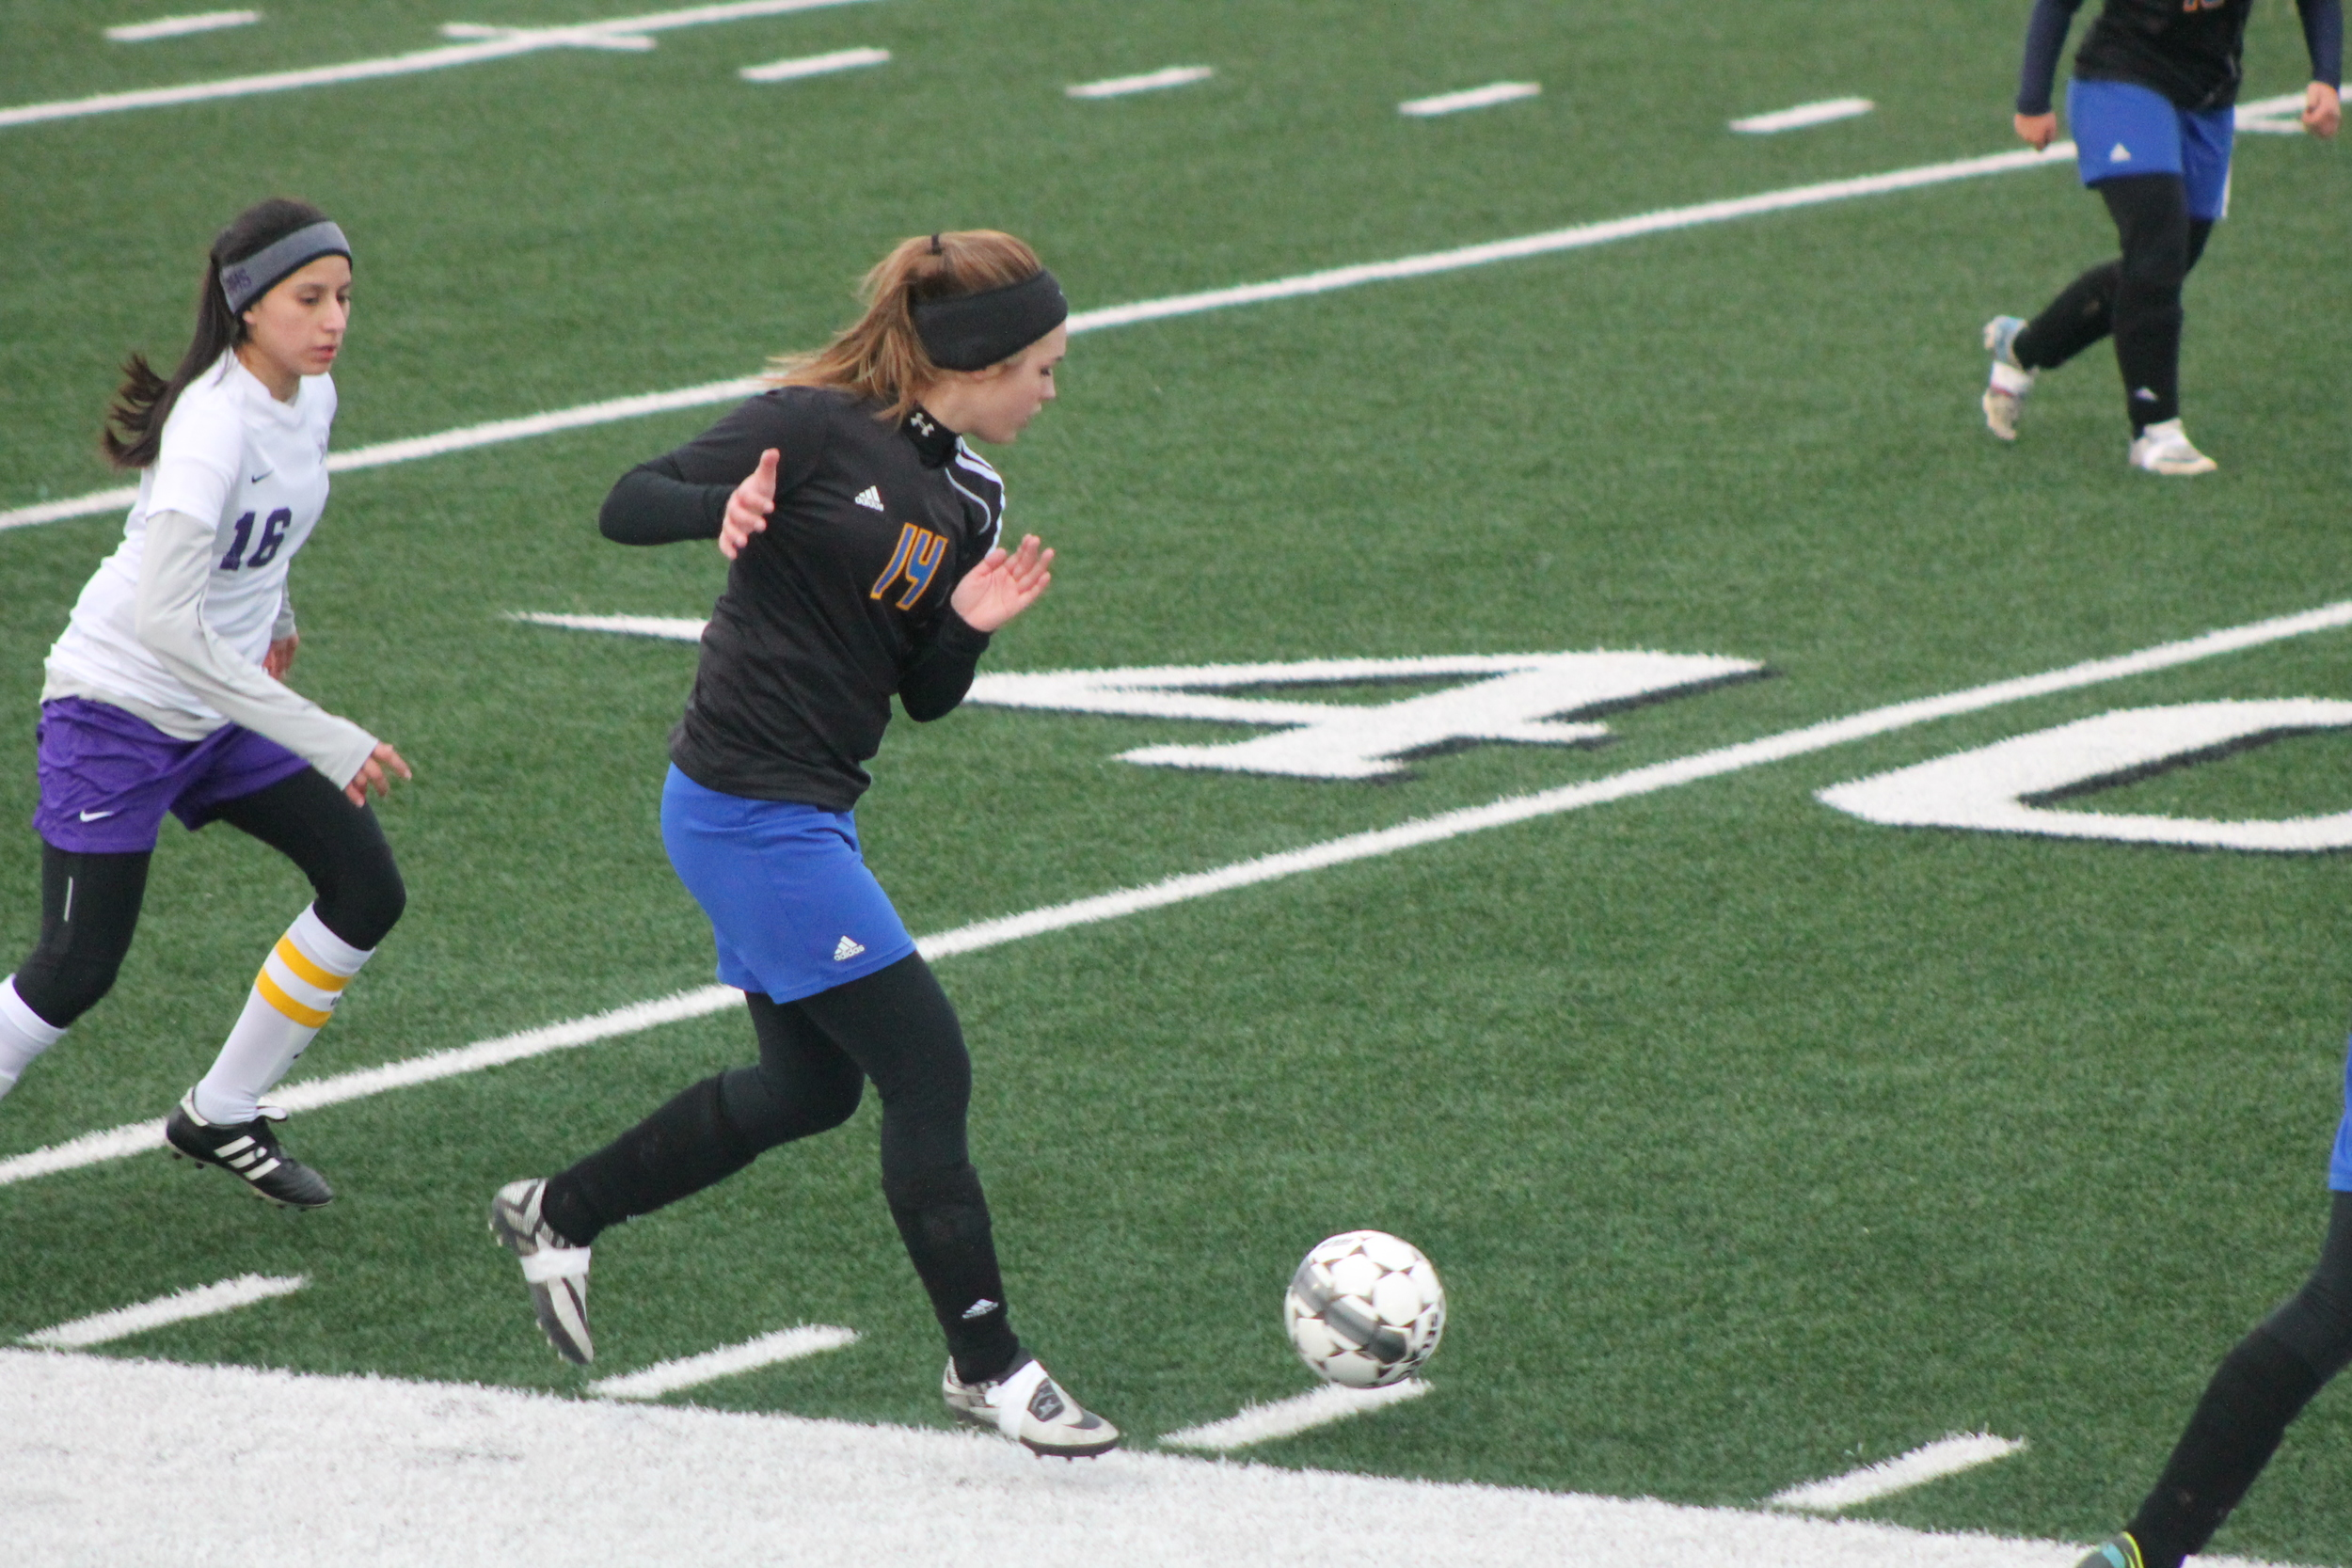 Photo by Adam Routon) Karlee Alexander moving the ball for the Pantherettes against Bonham